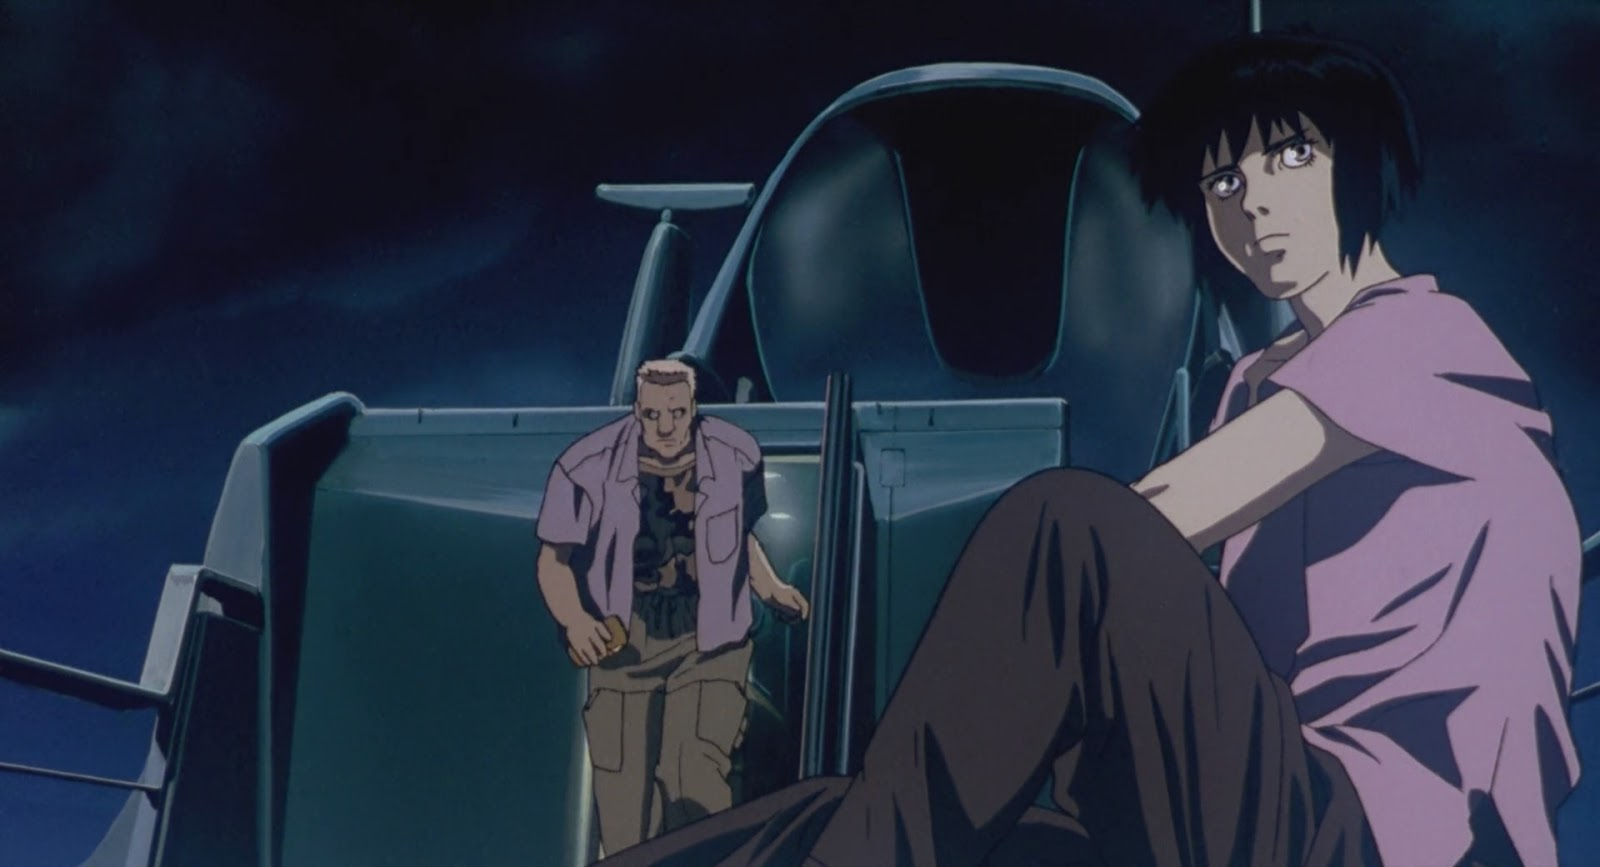 %255BIlkay23%255D%2BGhost%2BIn%2Bthe%2BShell%2B%25281999%2529 - Ghost In The Shell (1995) | BDrip | 1080p | Sub Esp | MEGA | UPTOBOX |